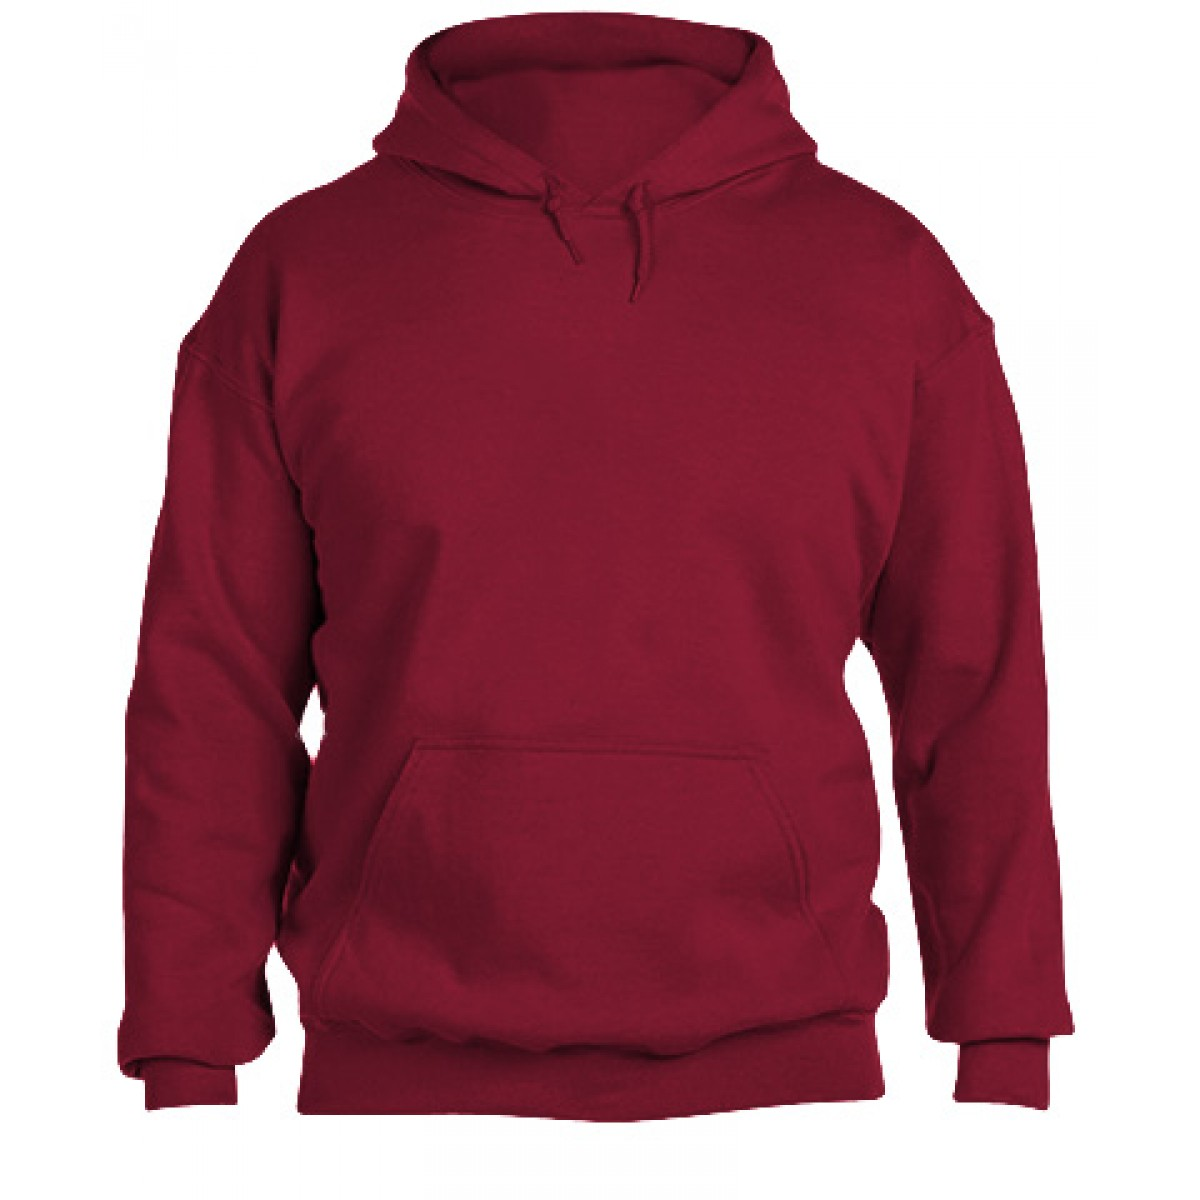 Hooded Sweatshirt 50/50 Heavy Blend -Cardinal Red-M